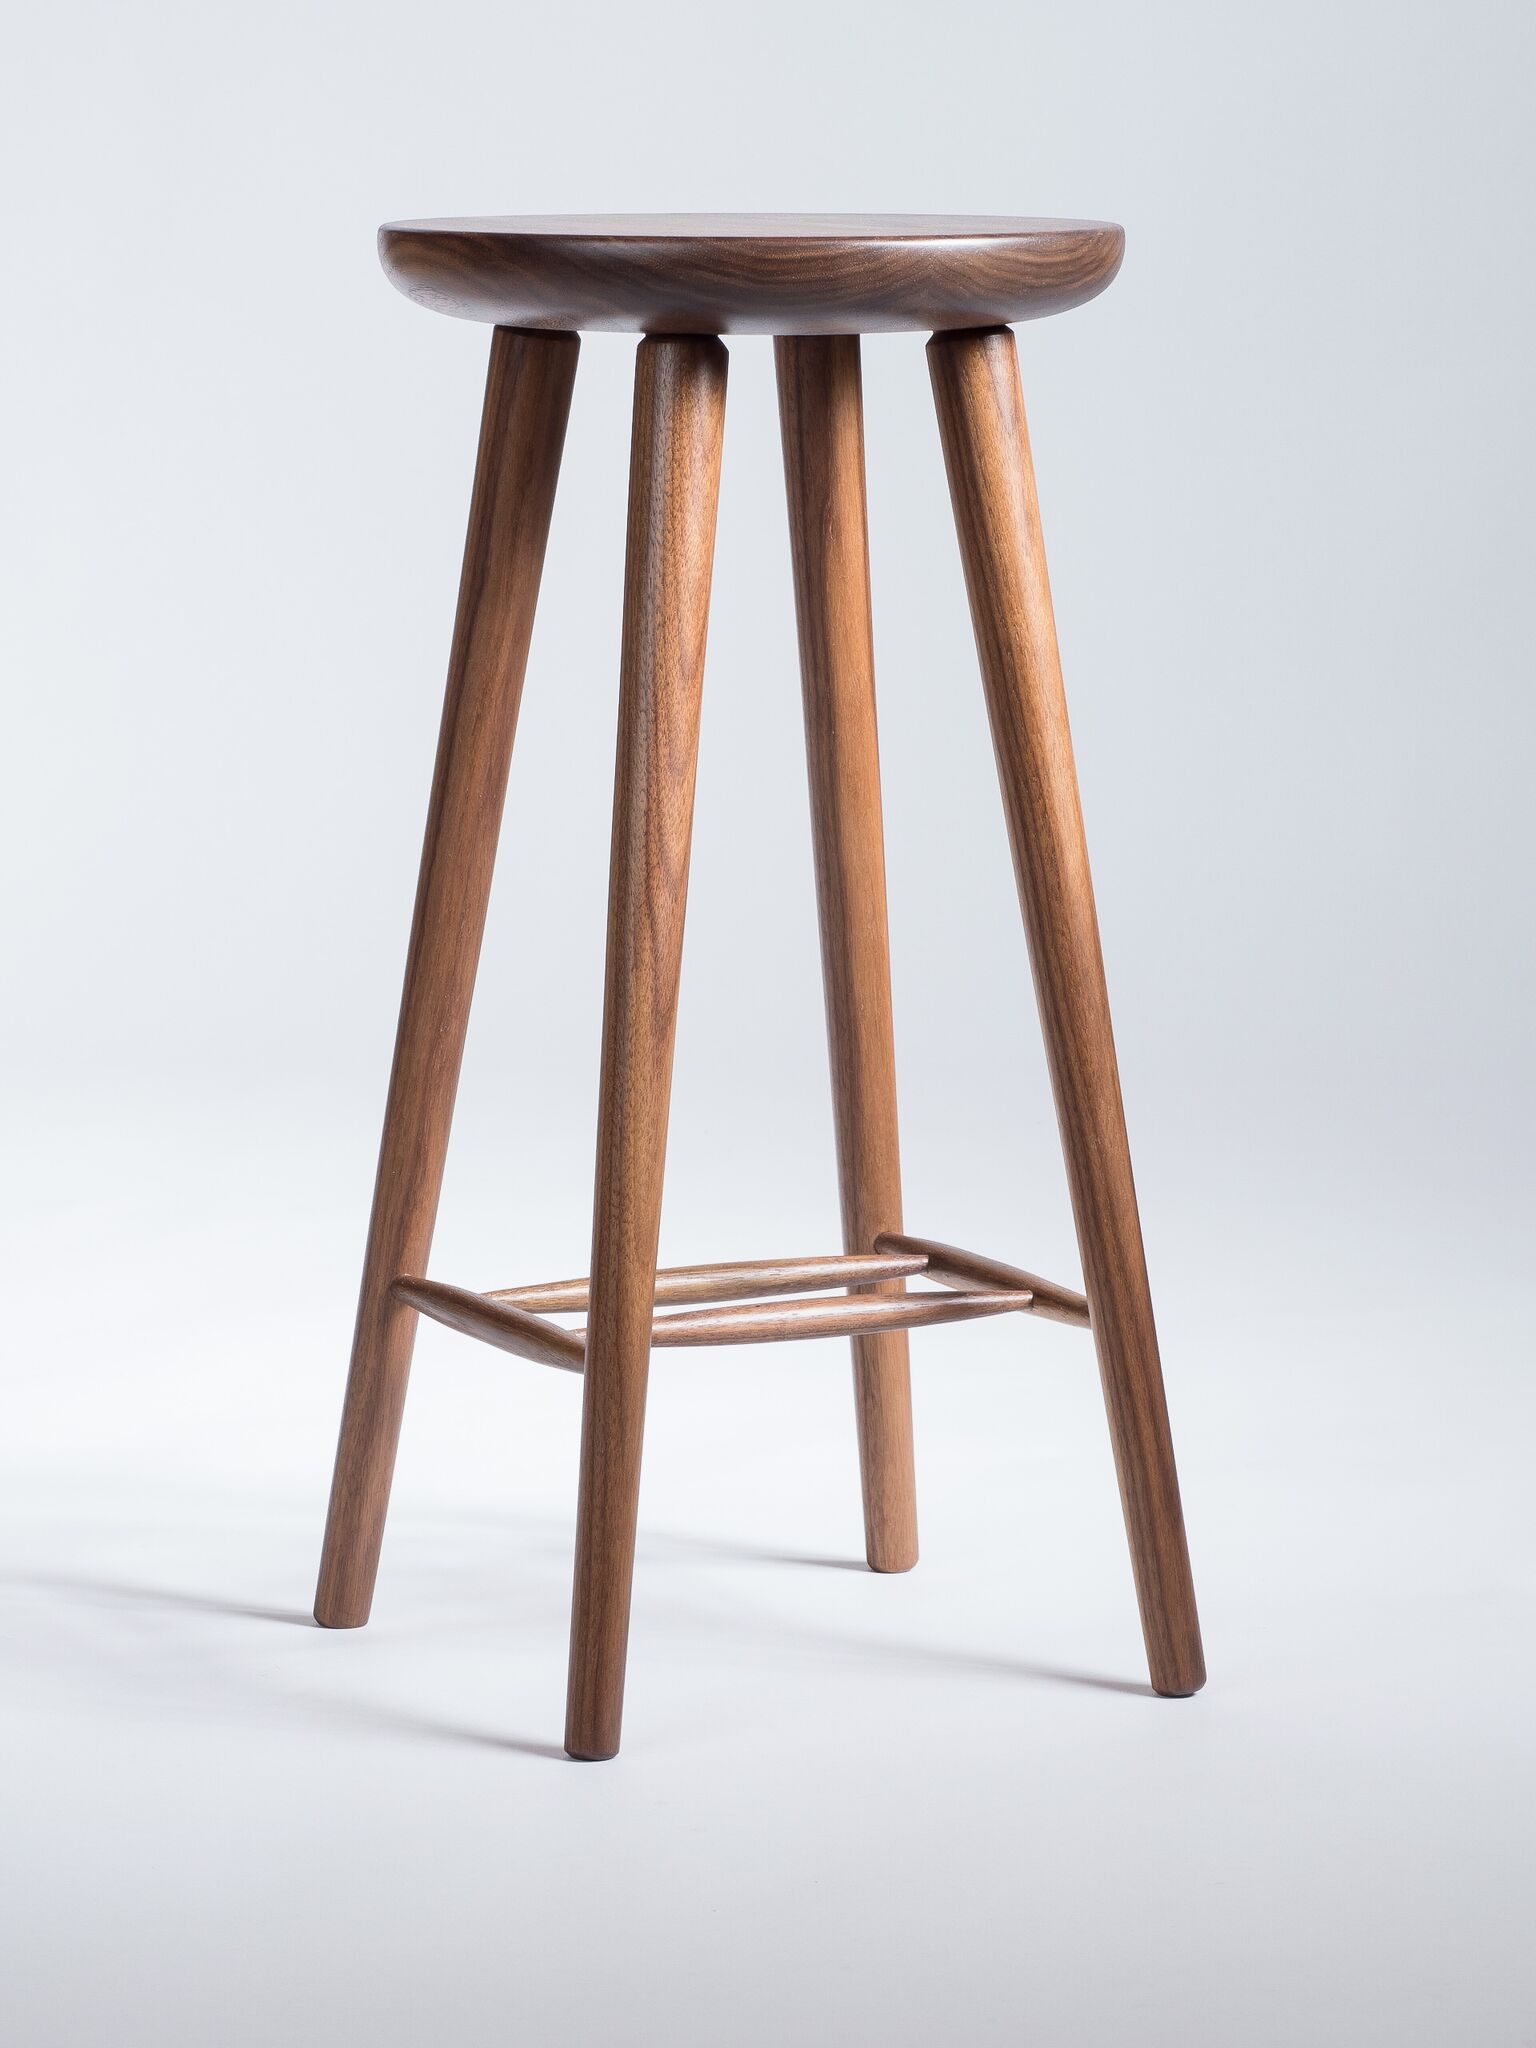 Contemporary Contour - The stool's minimal design pairs well with bar tops, cafes and kitchen counters.